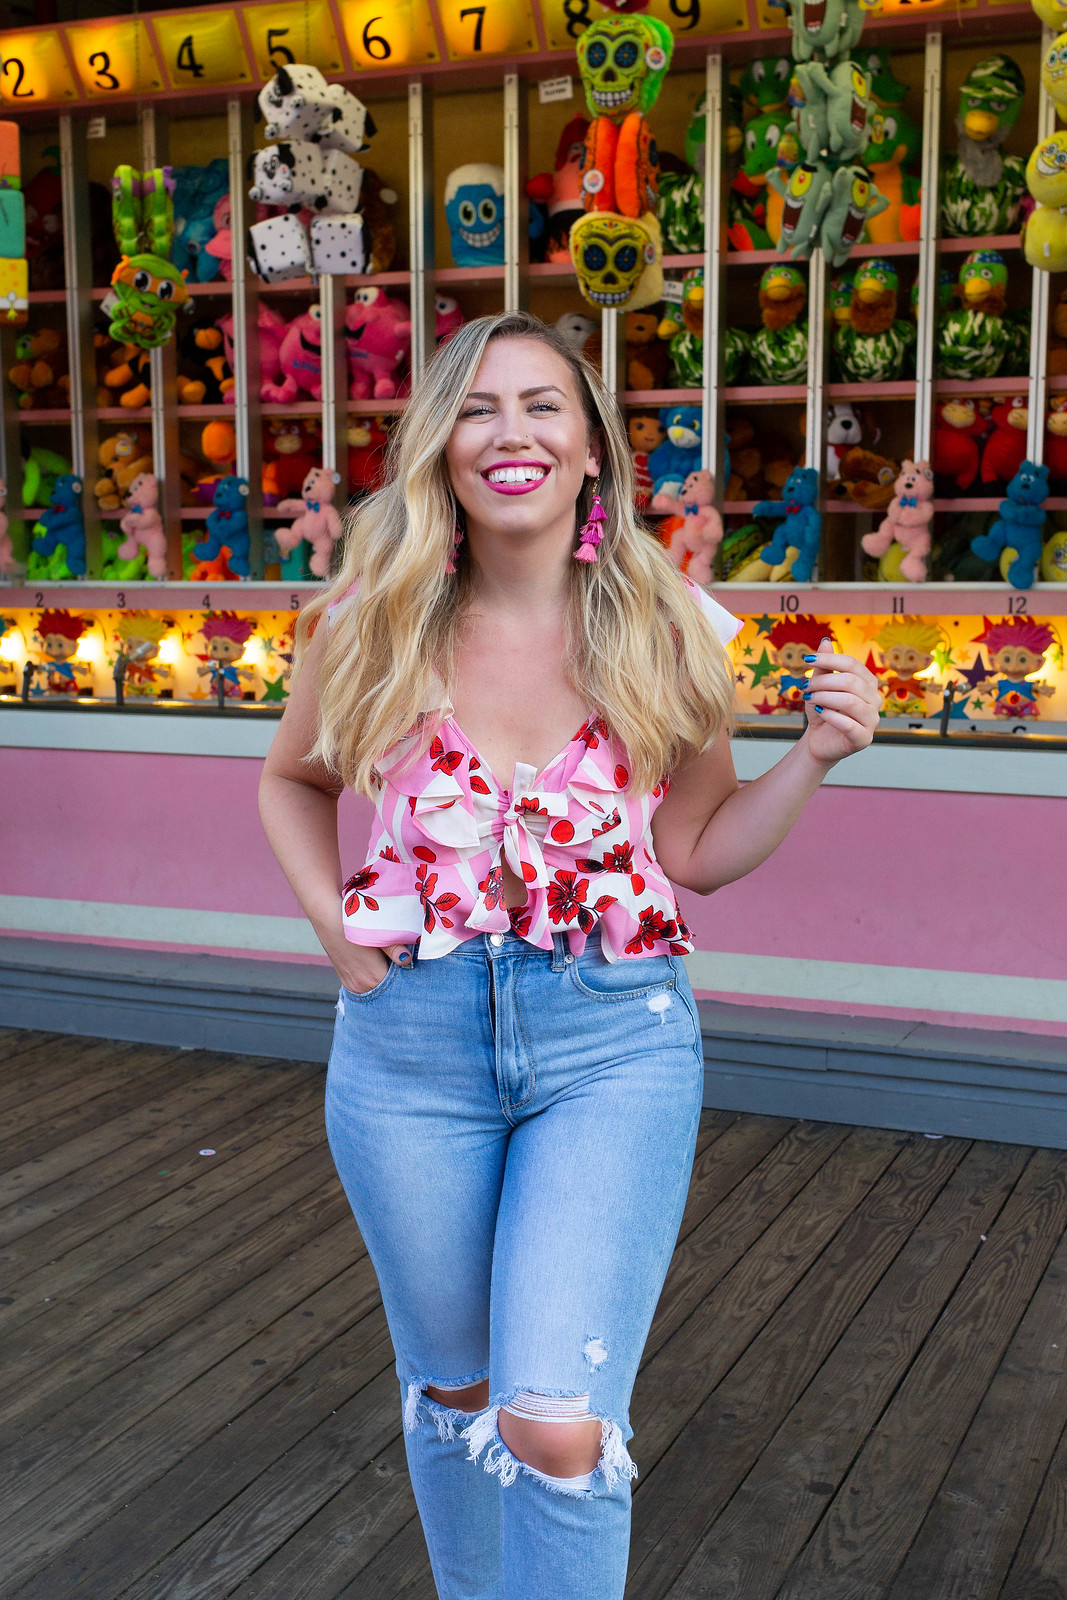 Playland Amusement Park Topshop Brigitte Ruffle Crop Top American Eagle Mom Jeans